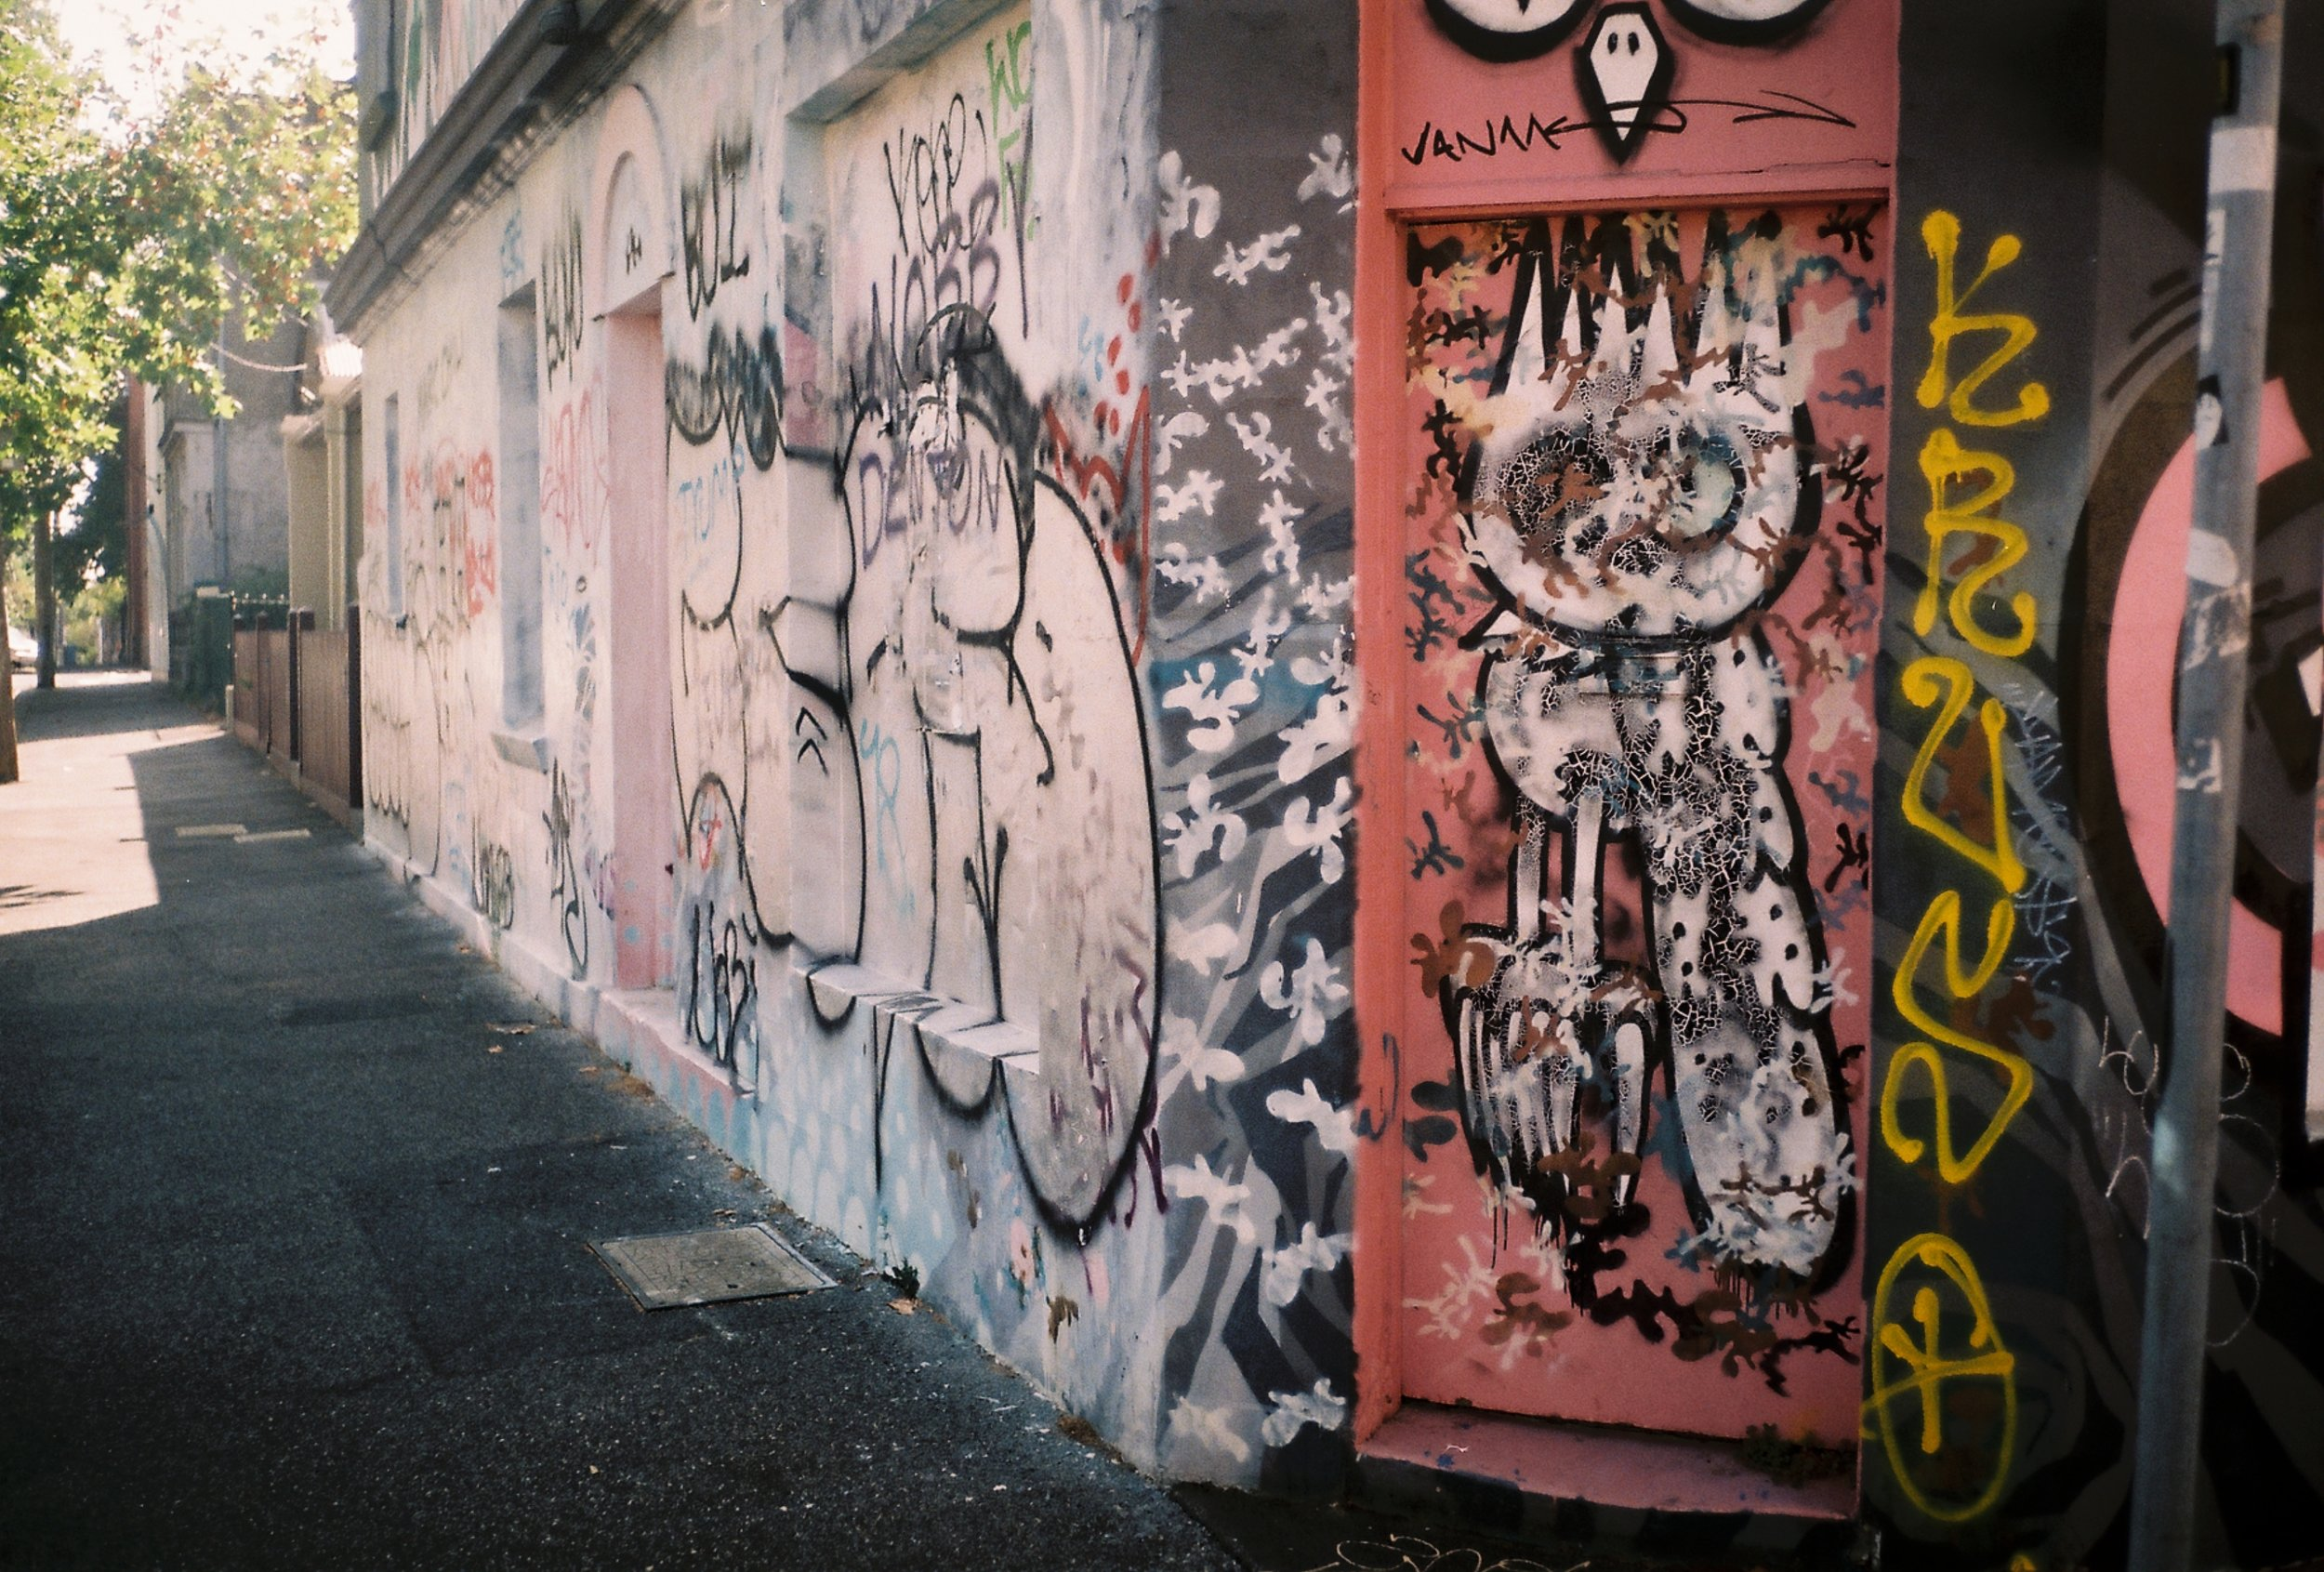 2B PAIR (side by side) Fitzroy I.JPG